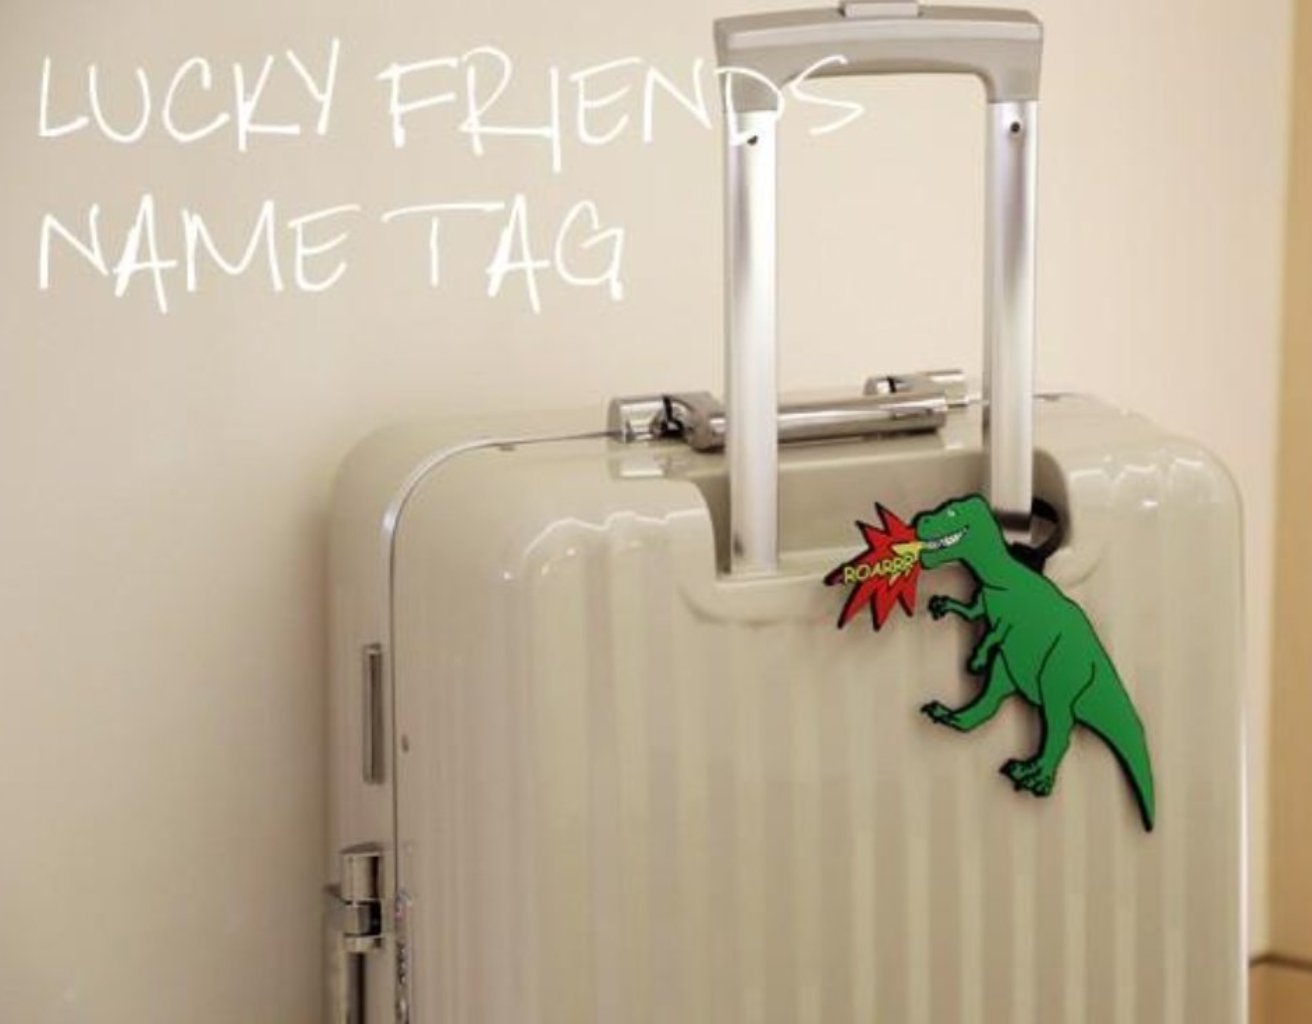 [Lucky Planet] Lucky Friends Dino Luggage Name Tag - Luckyplanetusa